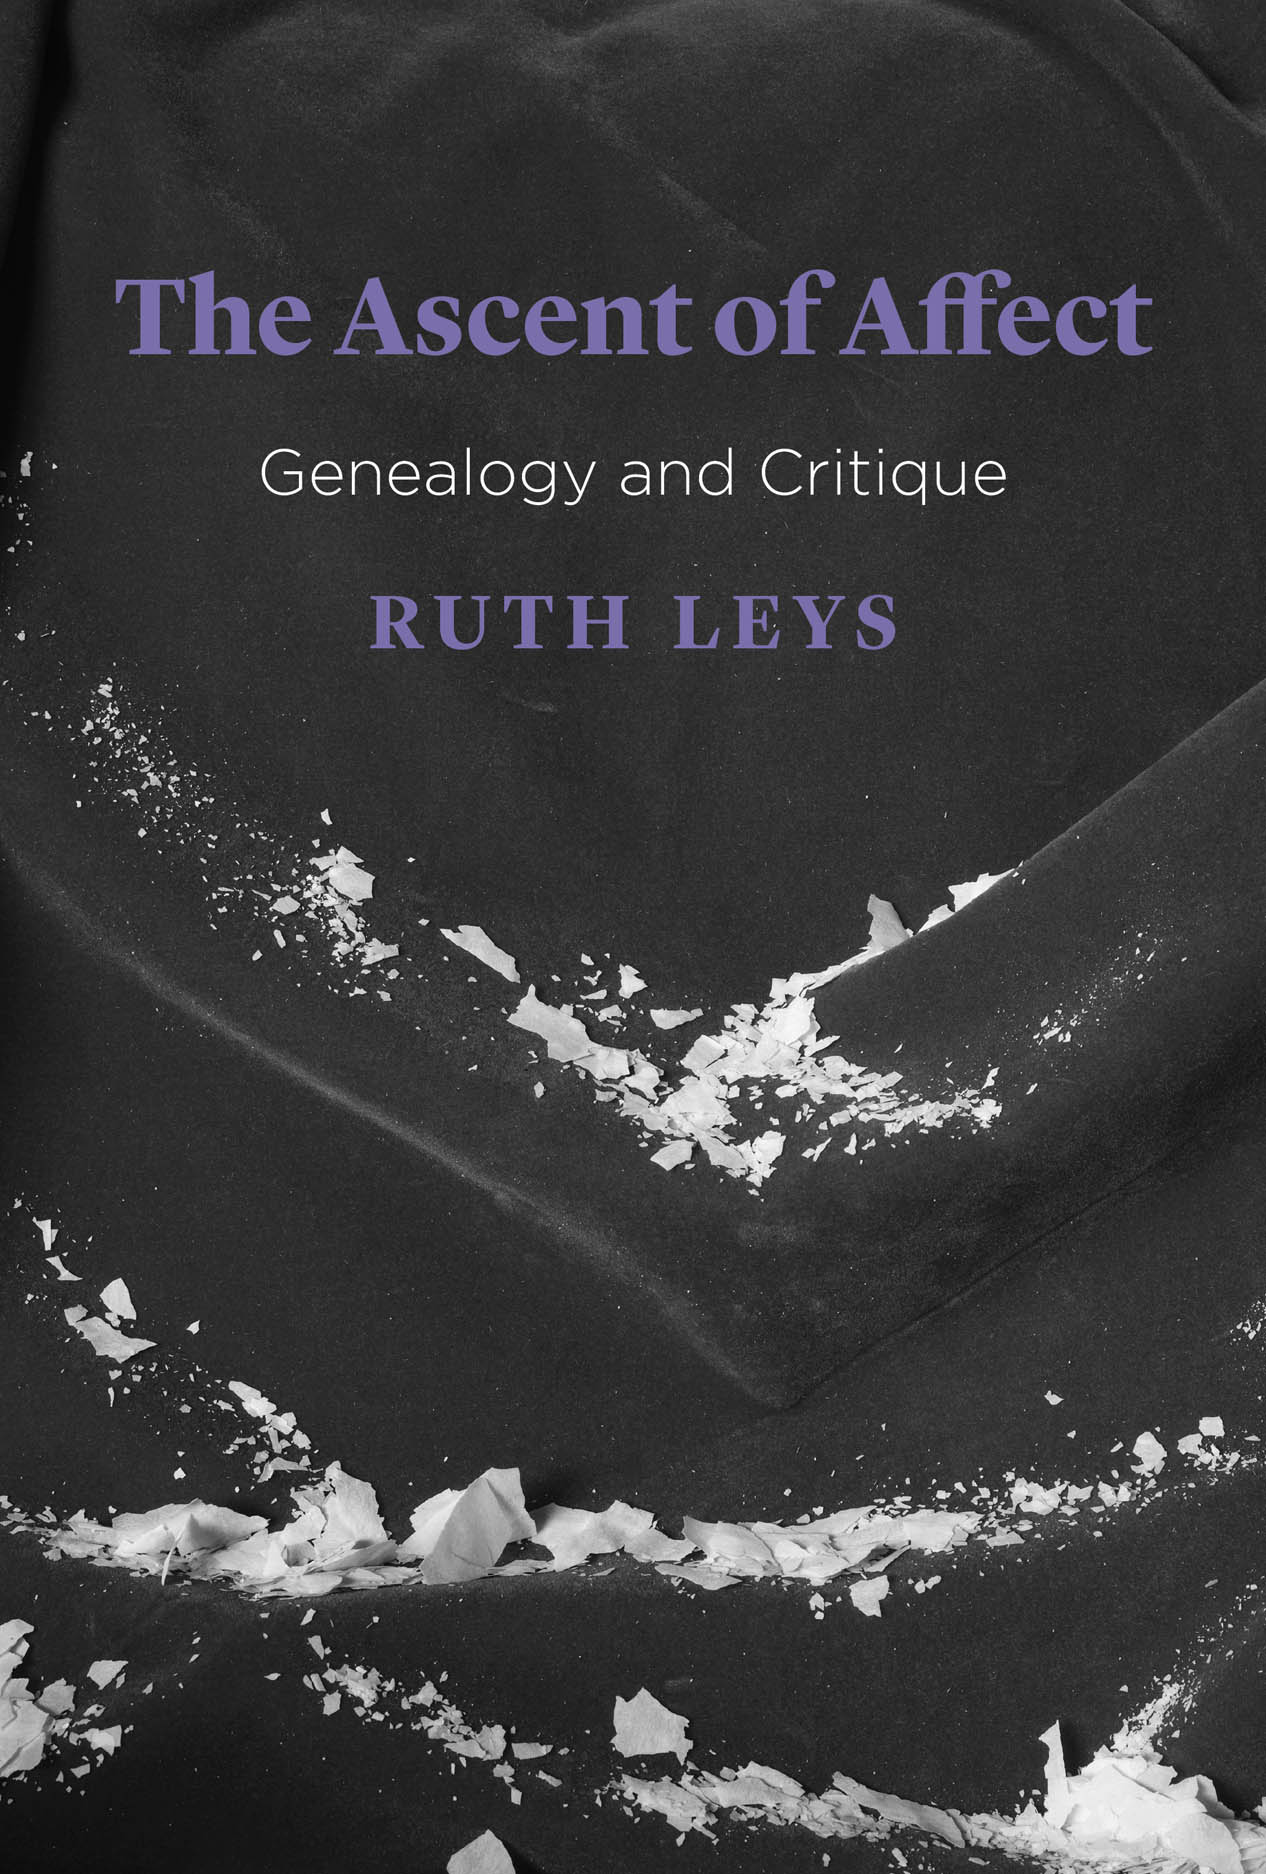 The Ascent of Affect: Genealogy and Critique